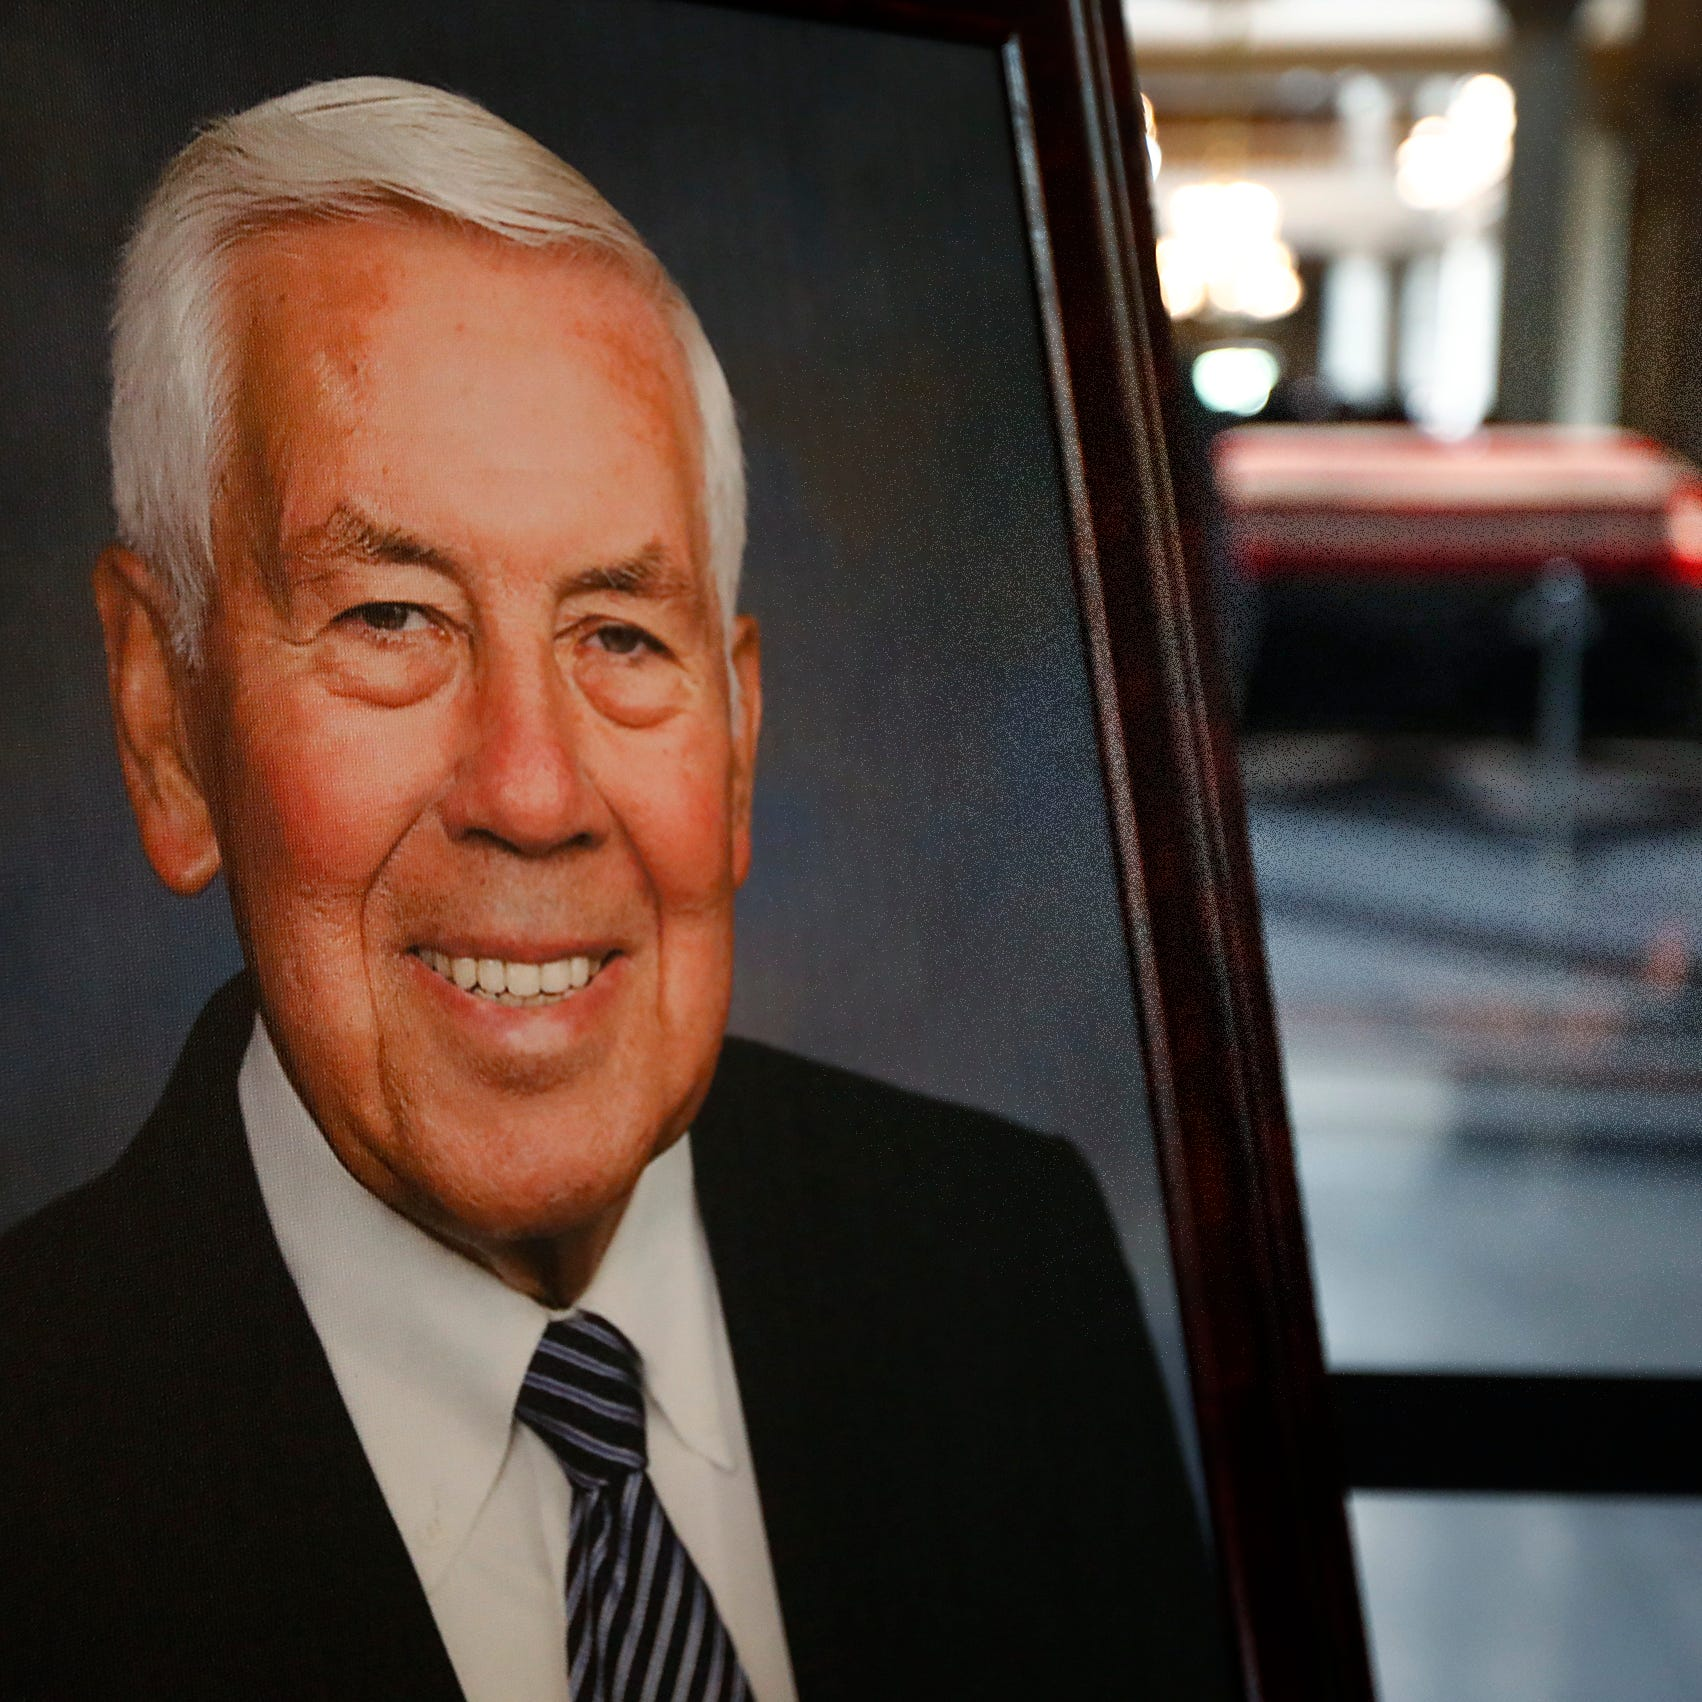 Richard Lugar funeral: Street closures, traffic delays and procession route